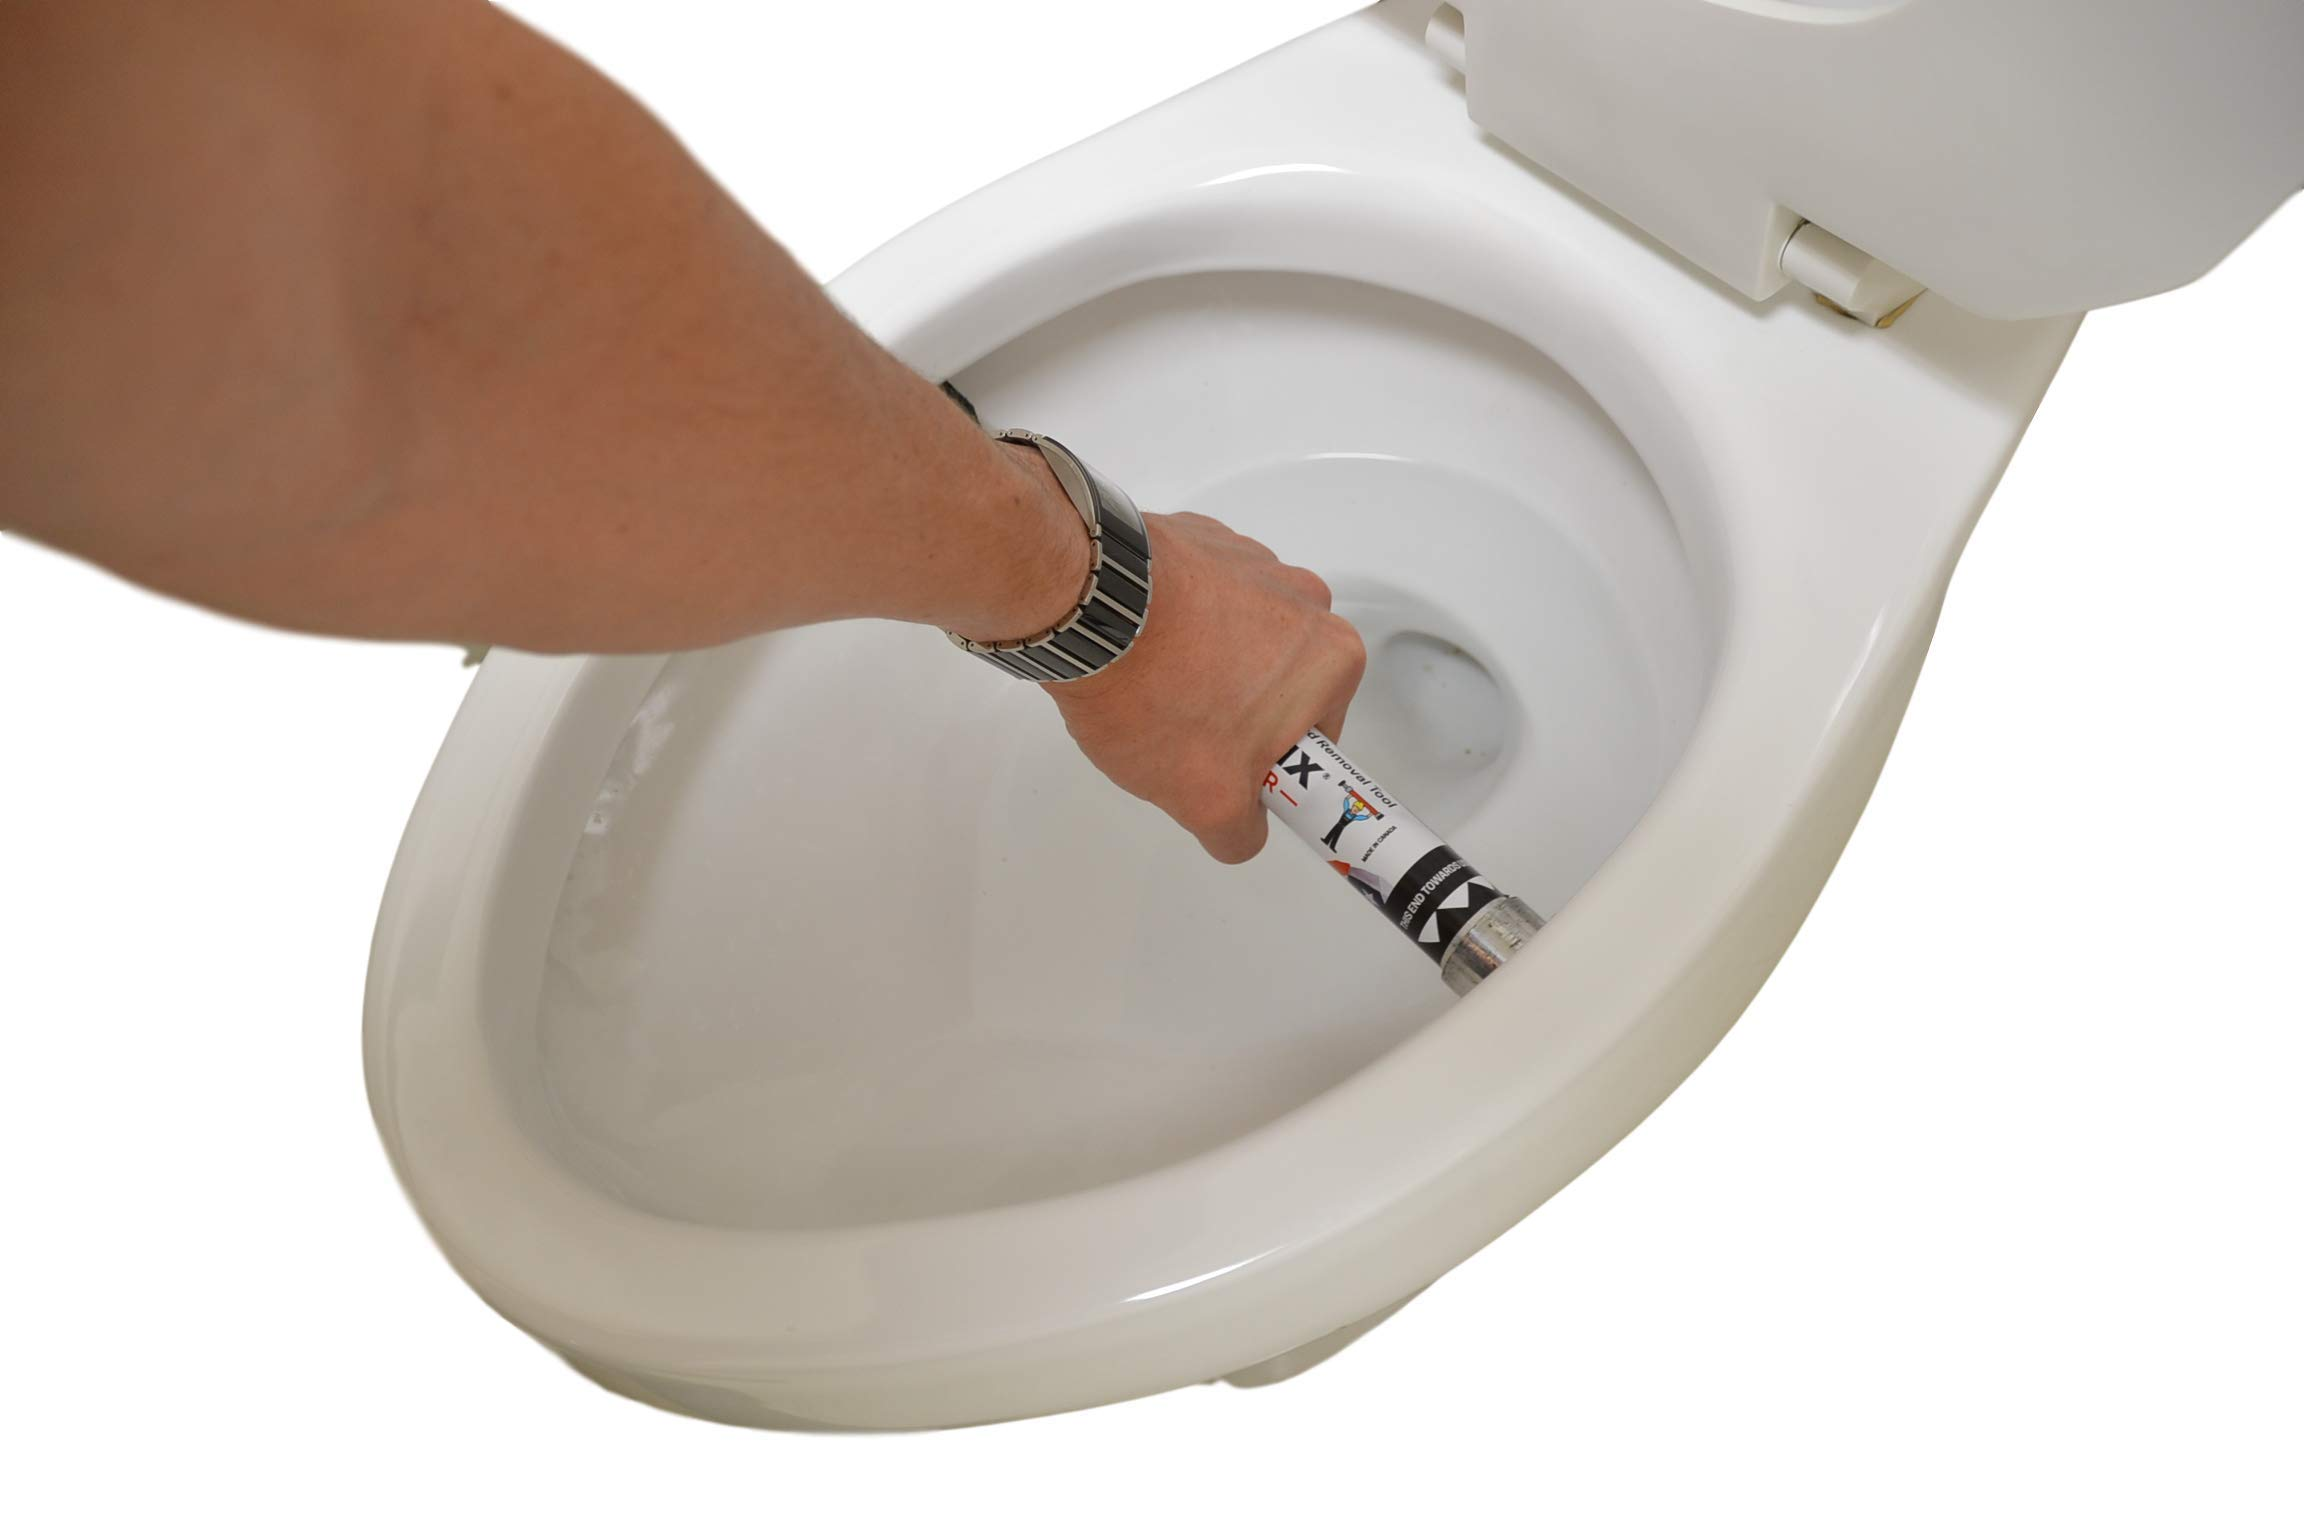 Pick Up Stix Toilet Installation and Removal Tool